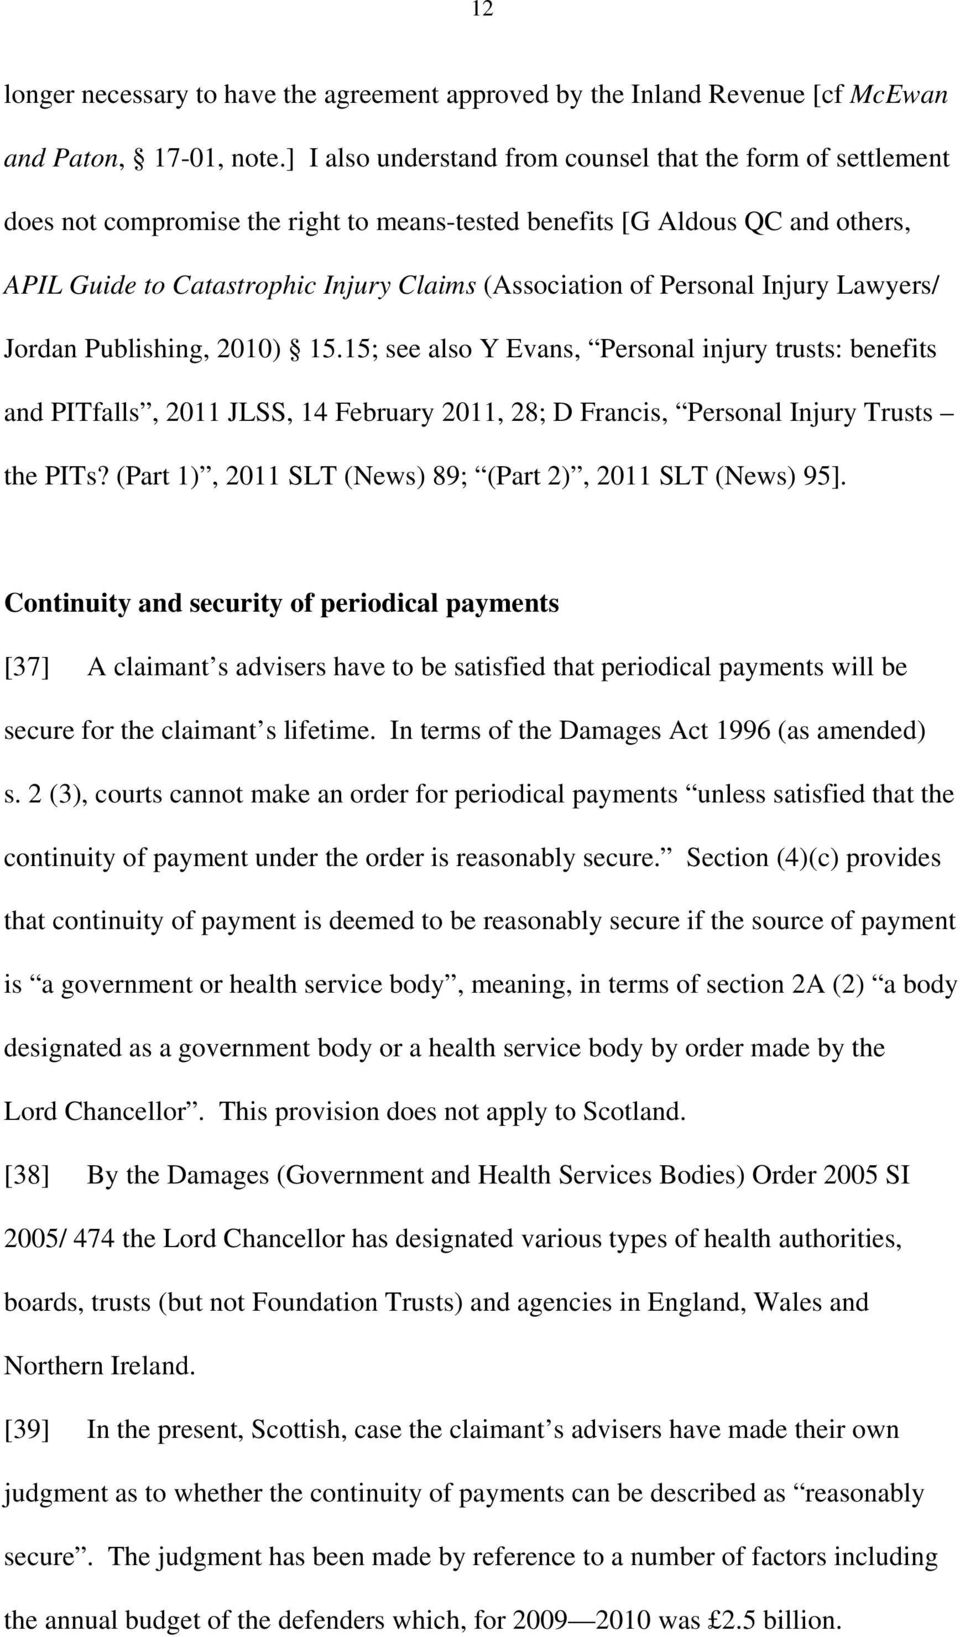 Personal Injury Lawyers/ Jordan Publishing, 2010) 15.15; see also Y Evans, Personal injury trusts: benefits and PITfalls, 2011 JLSS, 14 February 2011, 28; D Francis, Personal Injury Trusts the PITs?